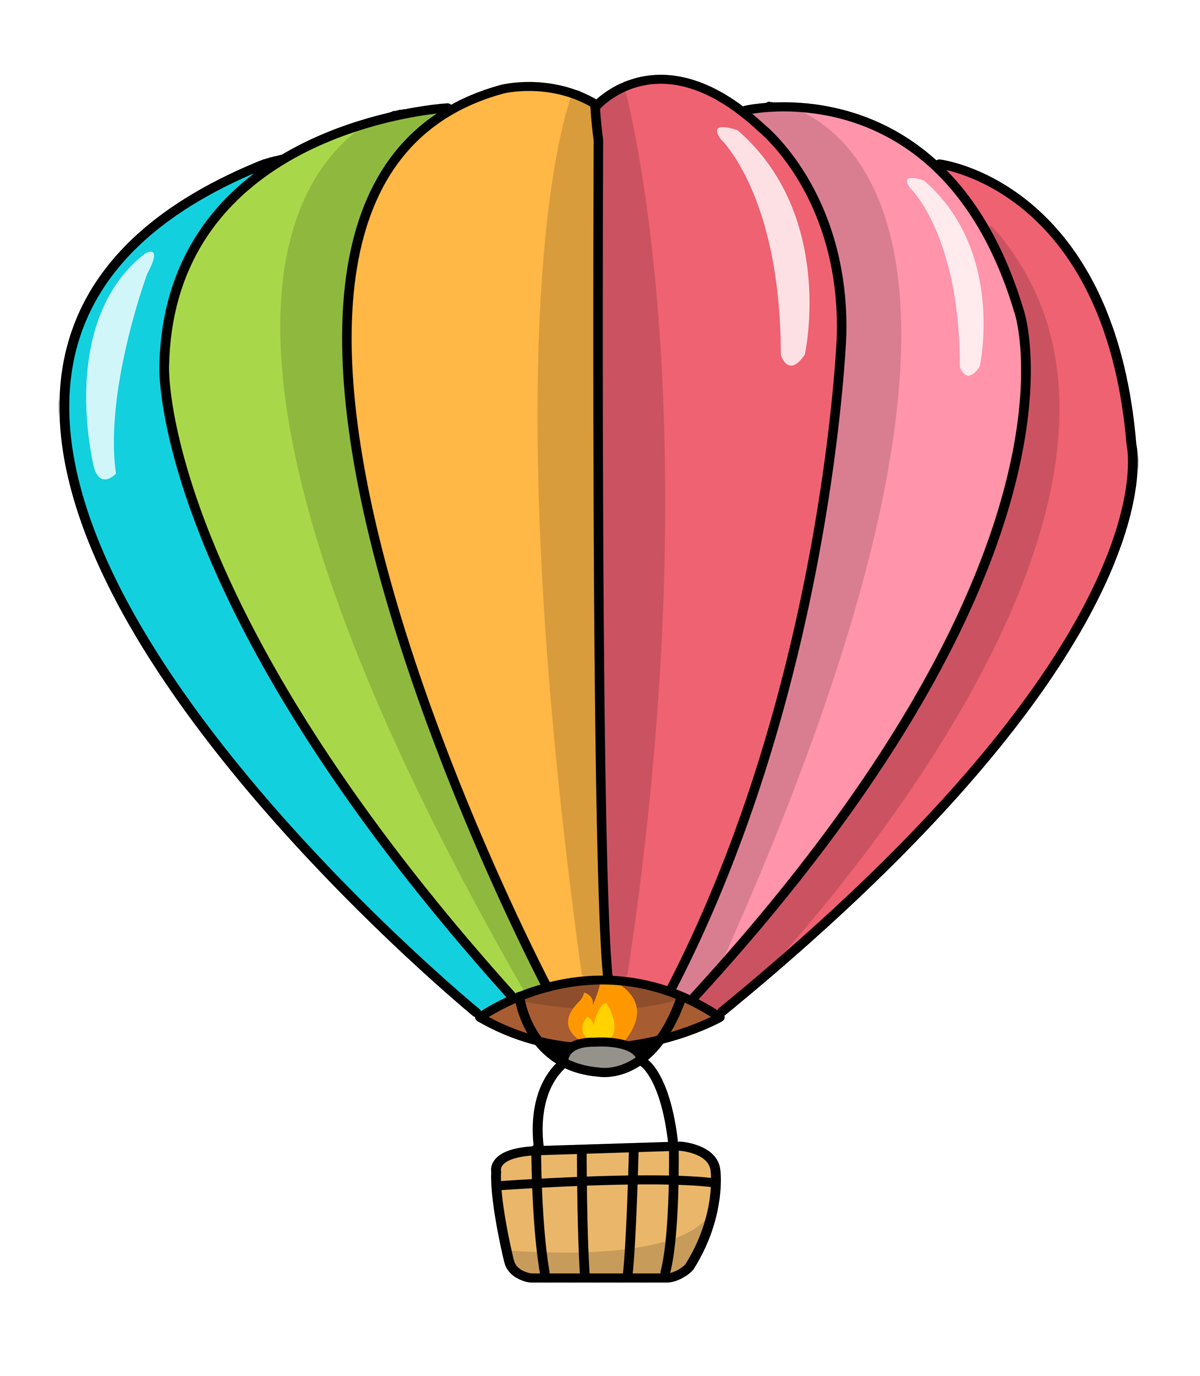 20 Hot air balloon clipart for free download on Premium art.